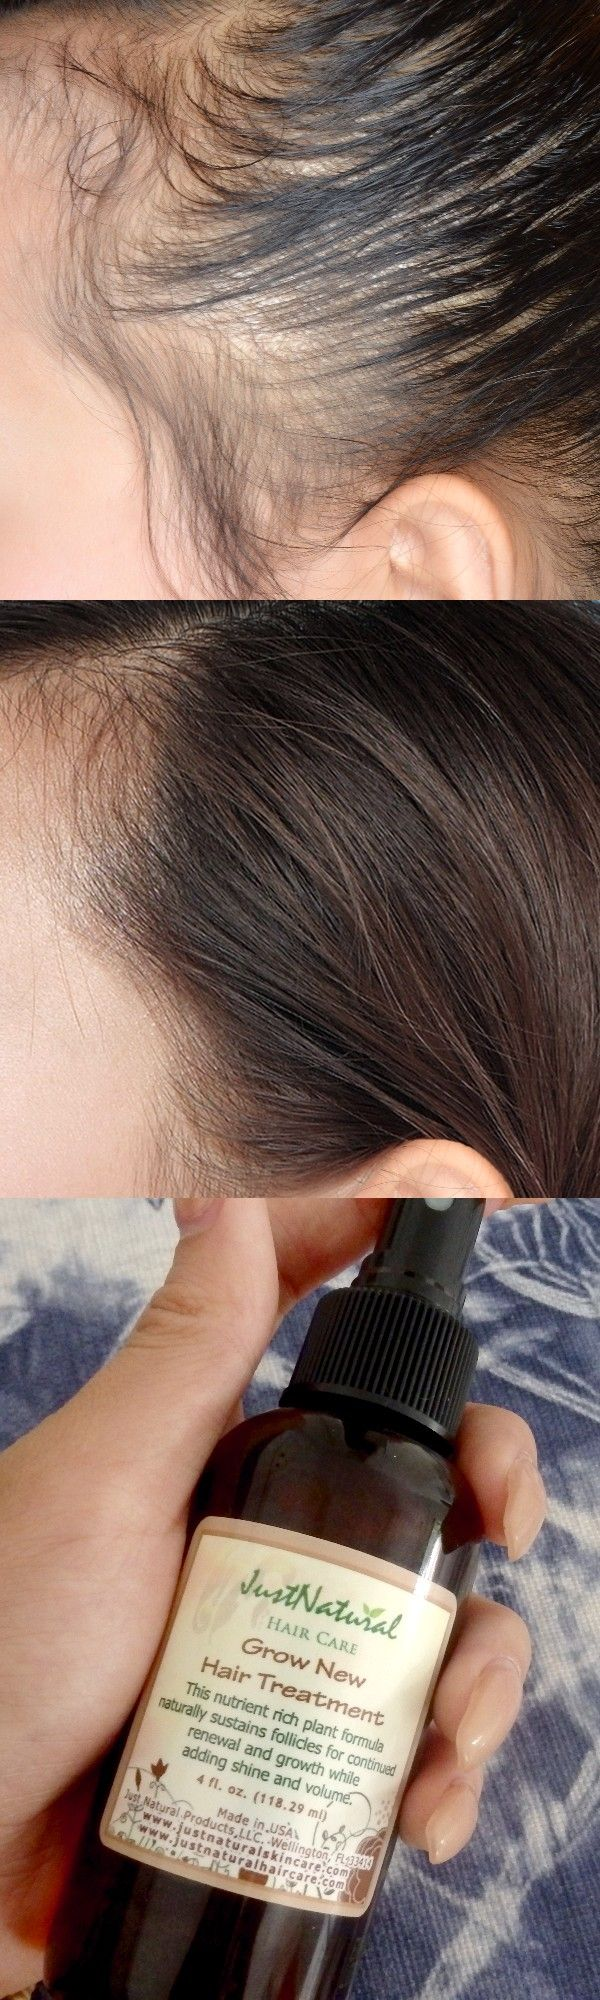 I Never Thought A Natural Product Was The Answer To My Hair Loss My Doctor Told Me I Would Most Likely Never Be Hair Again Hair Treatment Natural Hair Styles